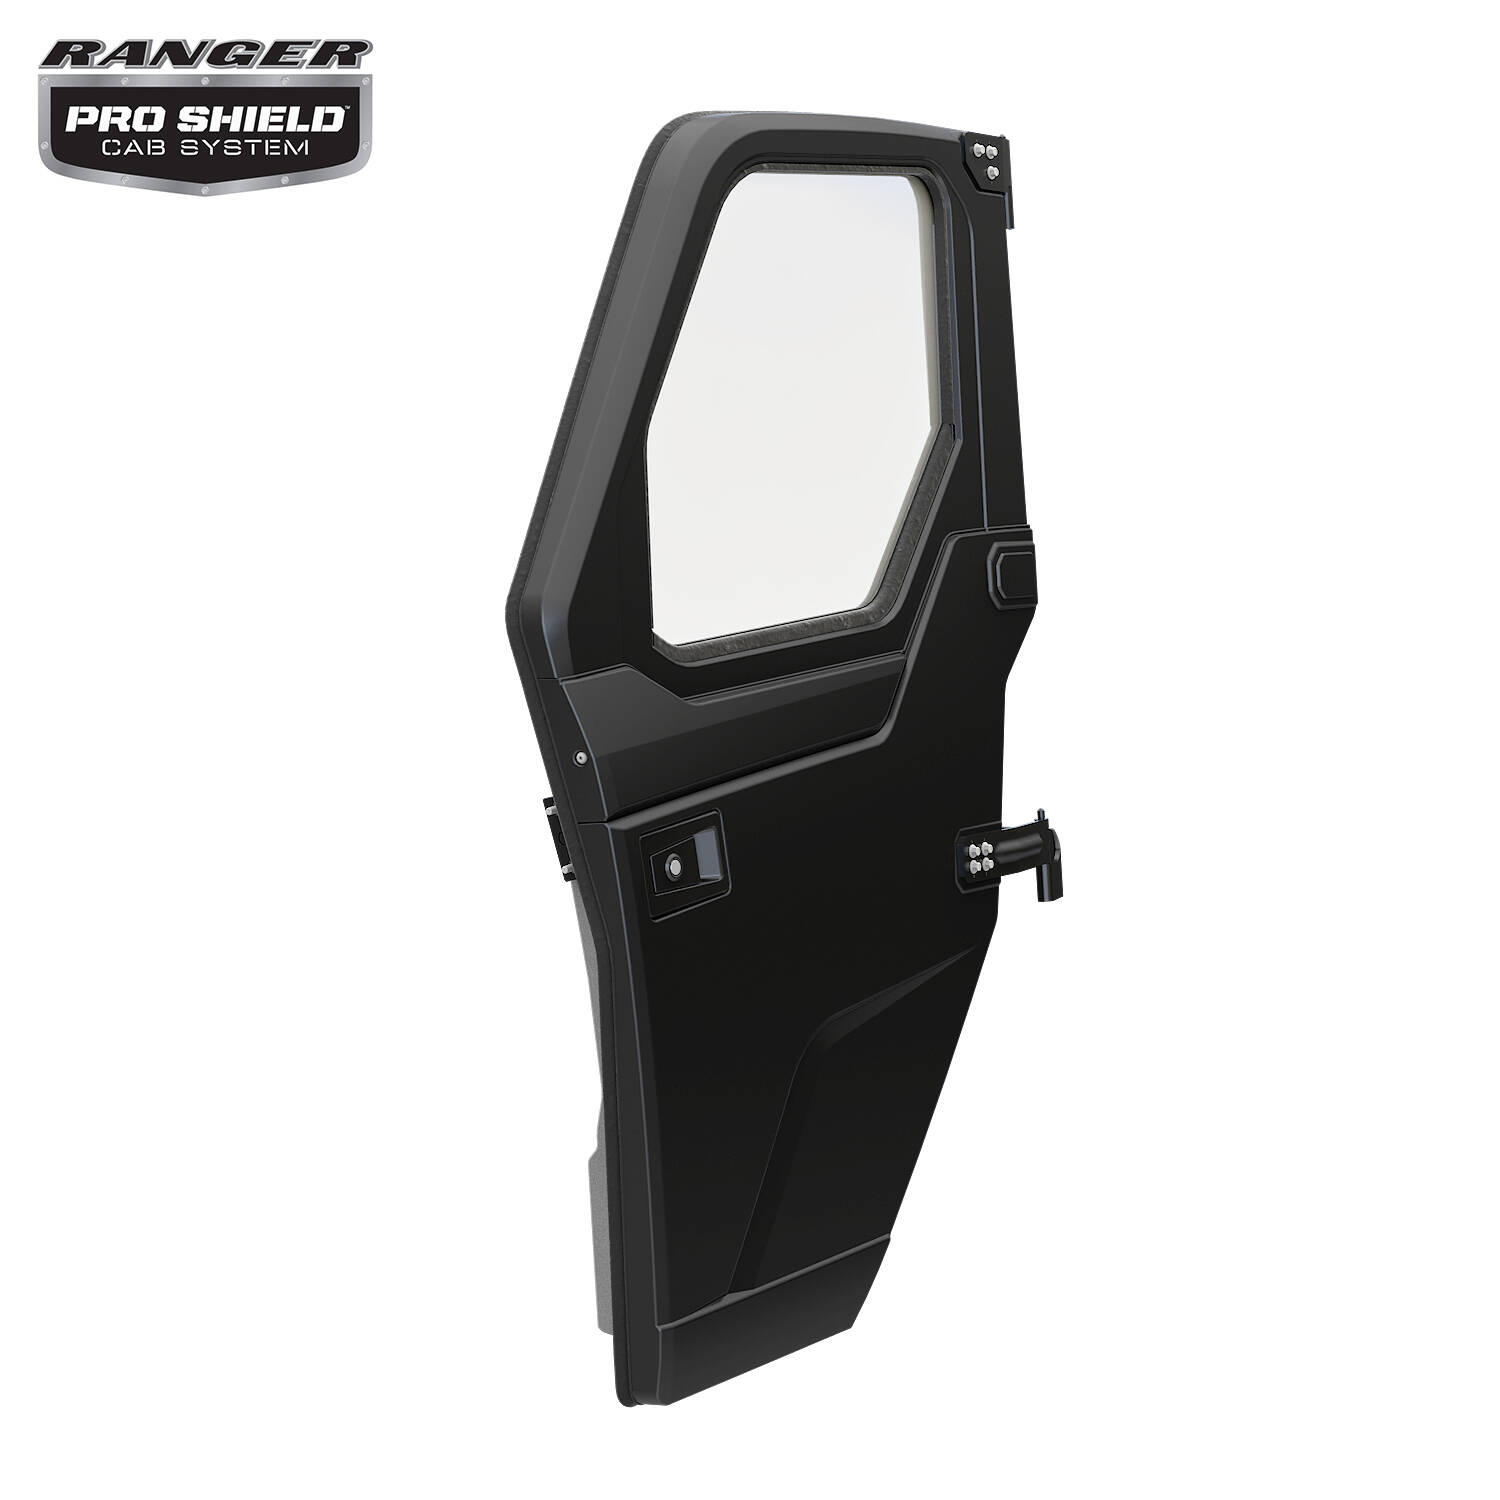 Poly Front Door Set with Manual Windows, Black